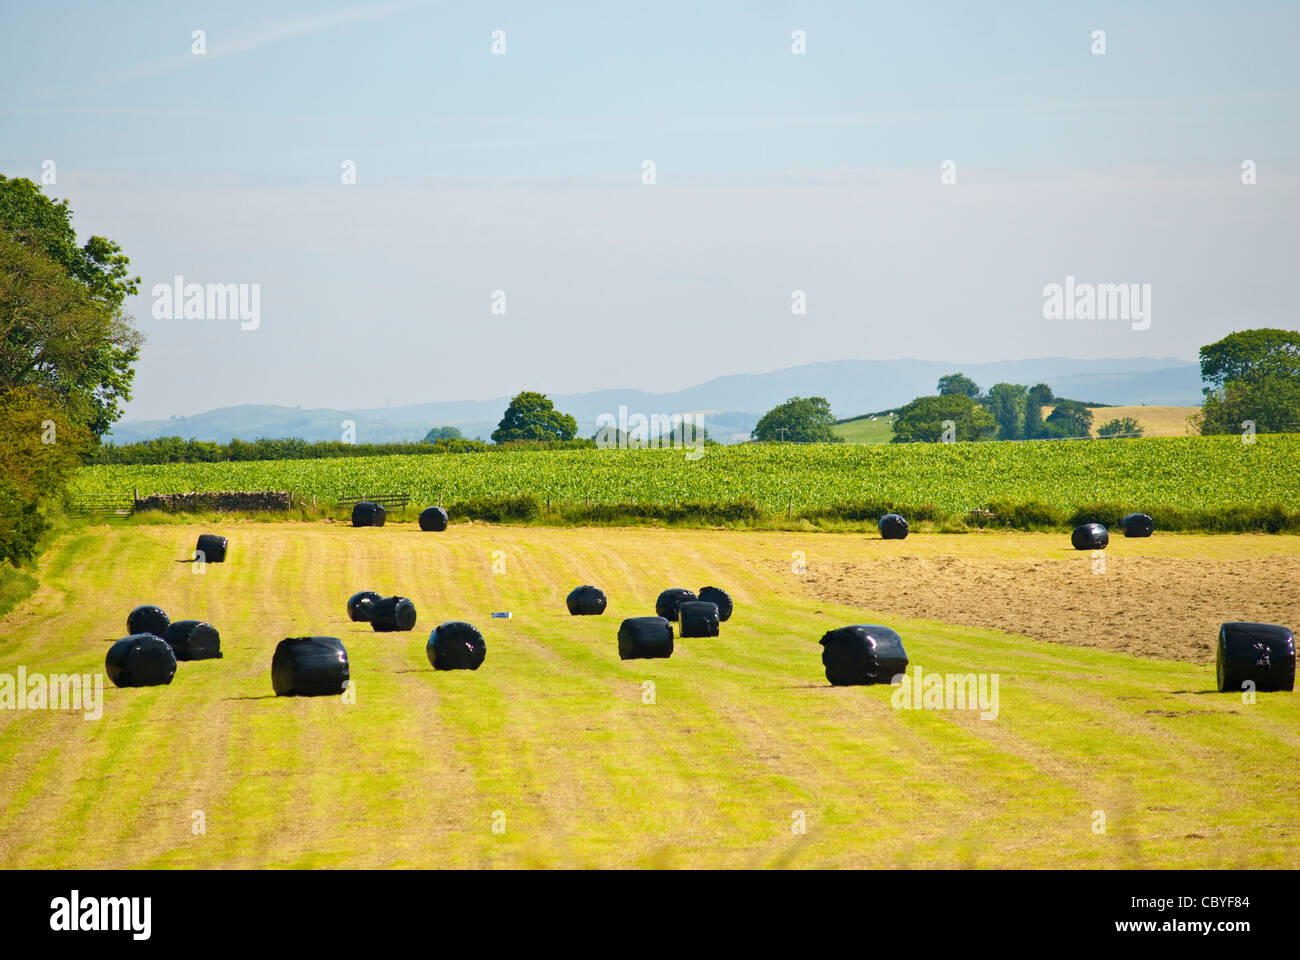 bails of silage - Stock Image